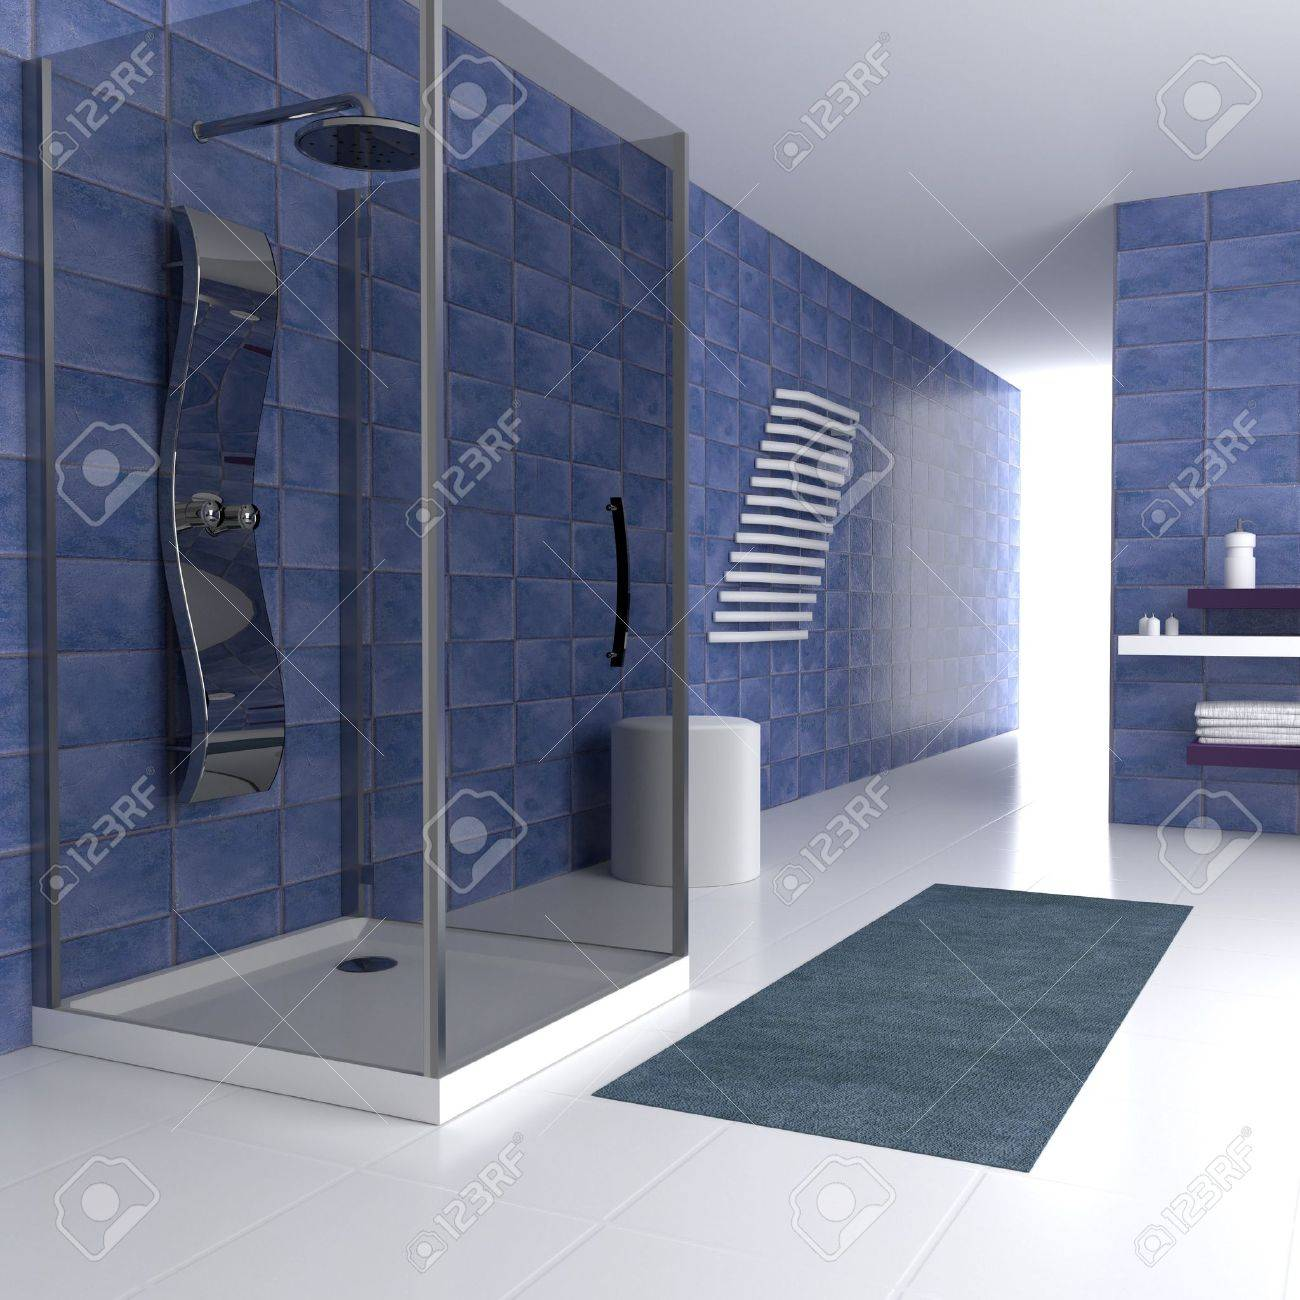 Simple bathrooms with shower - Simple Blue Bathing In 3d With Metal Shower Stock Photo 16142814